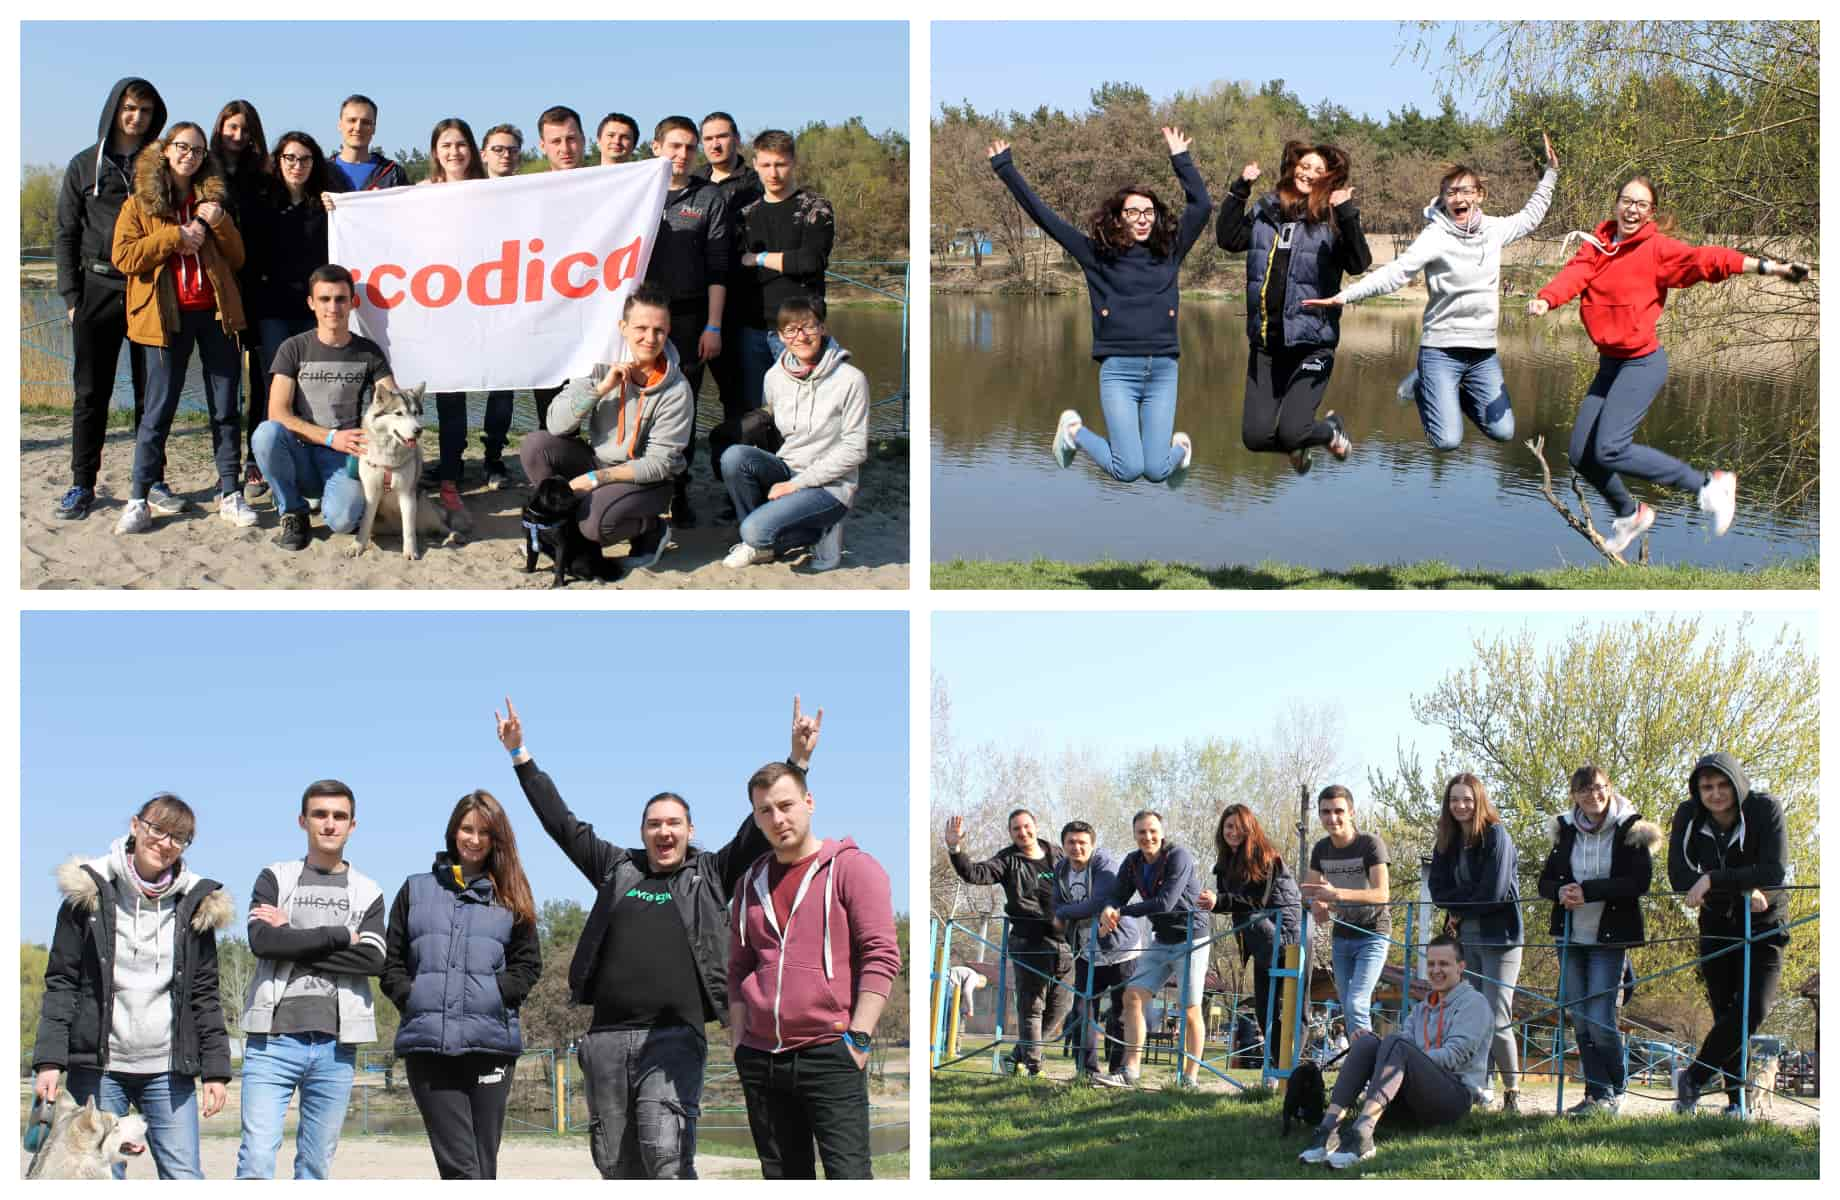 Codica team had a relaxing picnic by the river